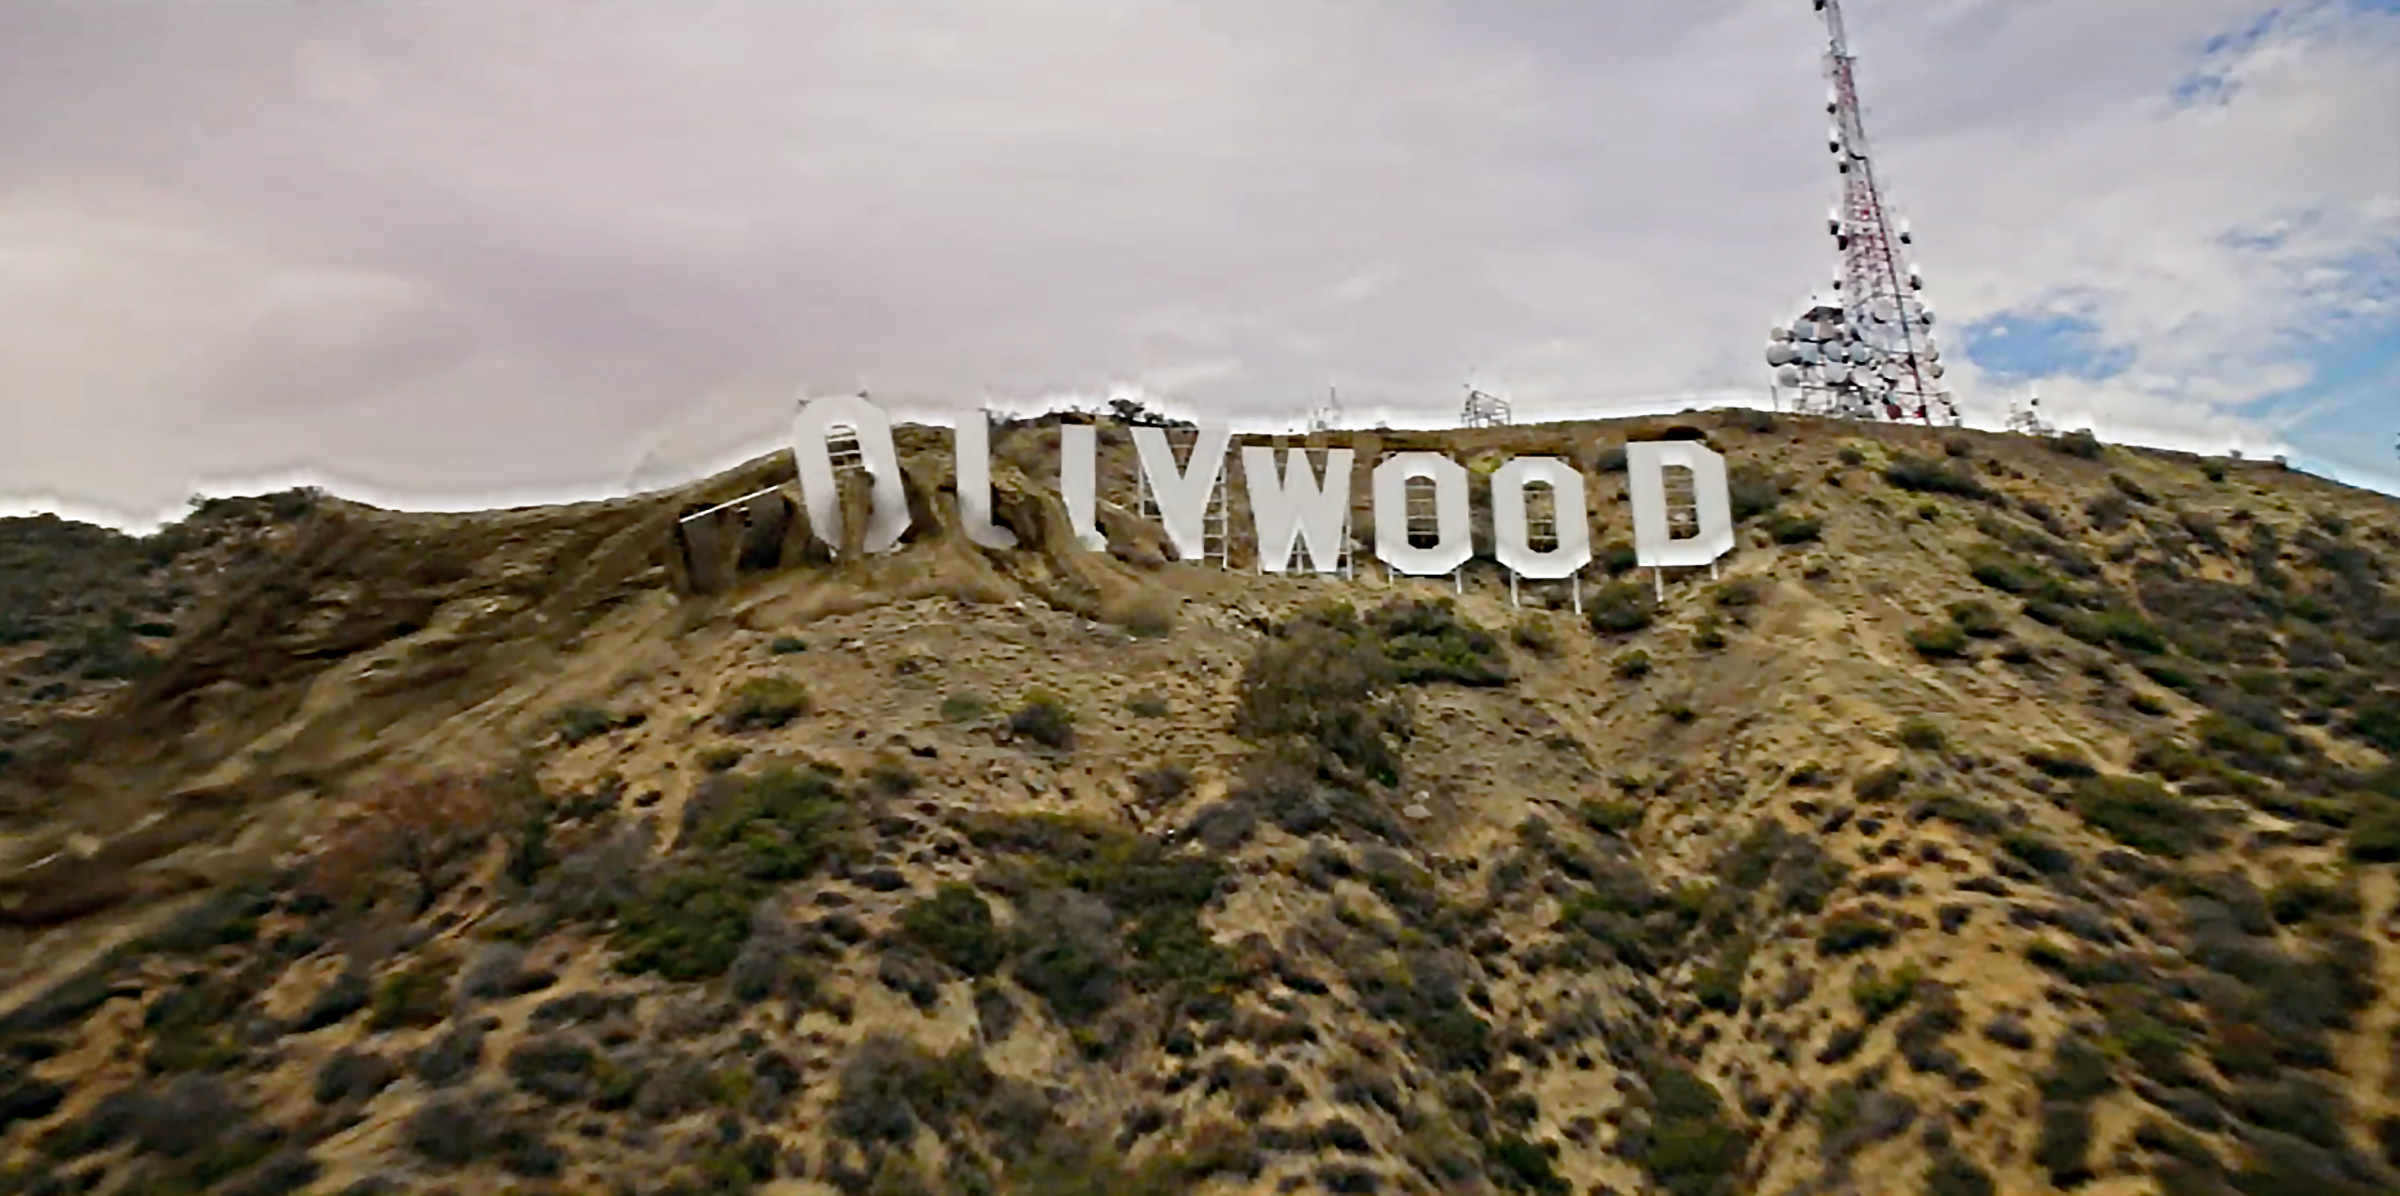 The iconic Hollywood sign crumbles in the Jan. 18, 2021, season premiere episode of 9-1-1.